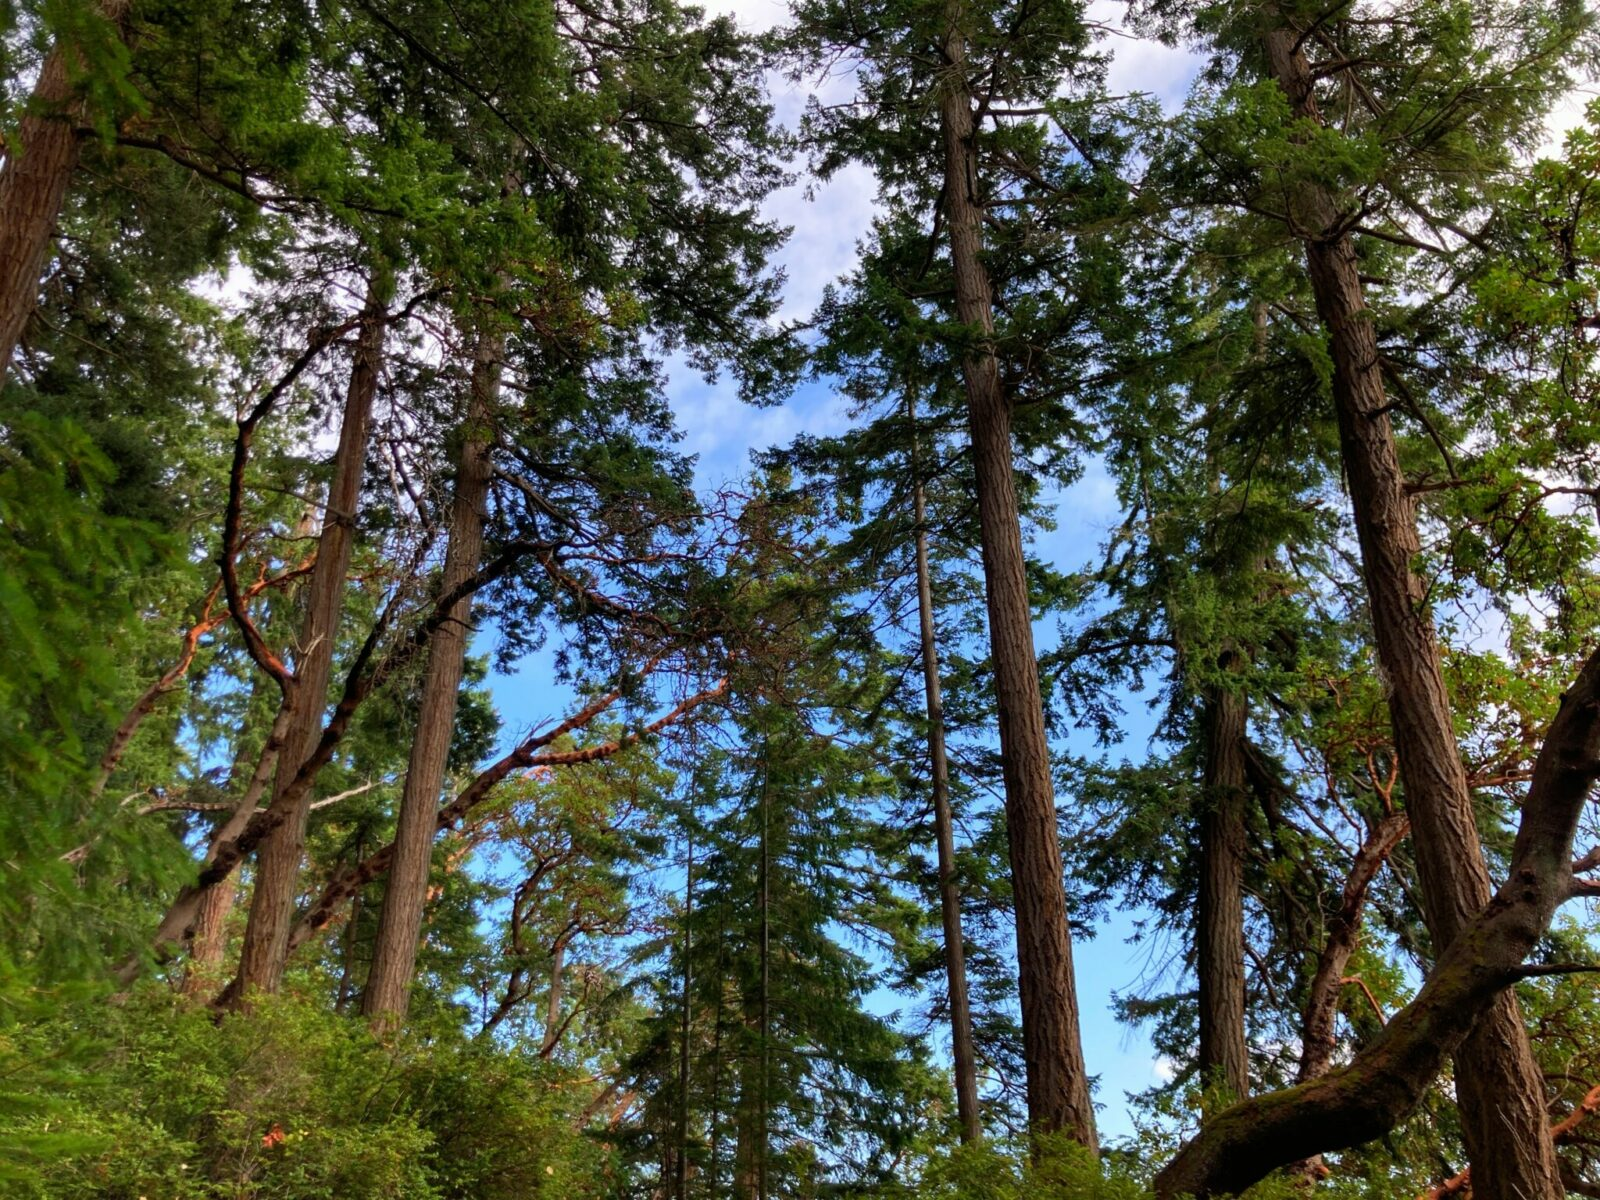 Different types of evergreen trees along a trail on a sunny day